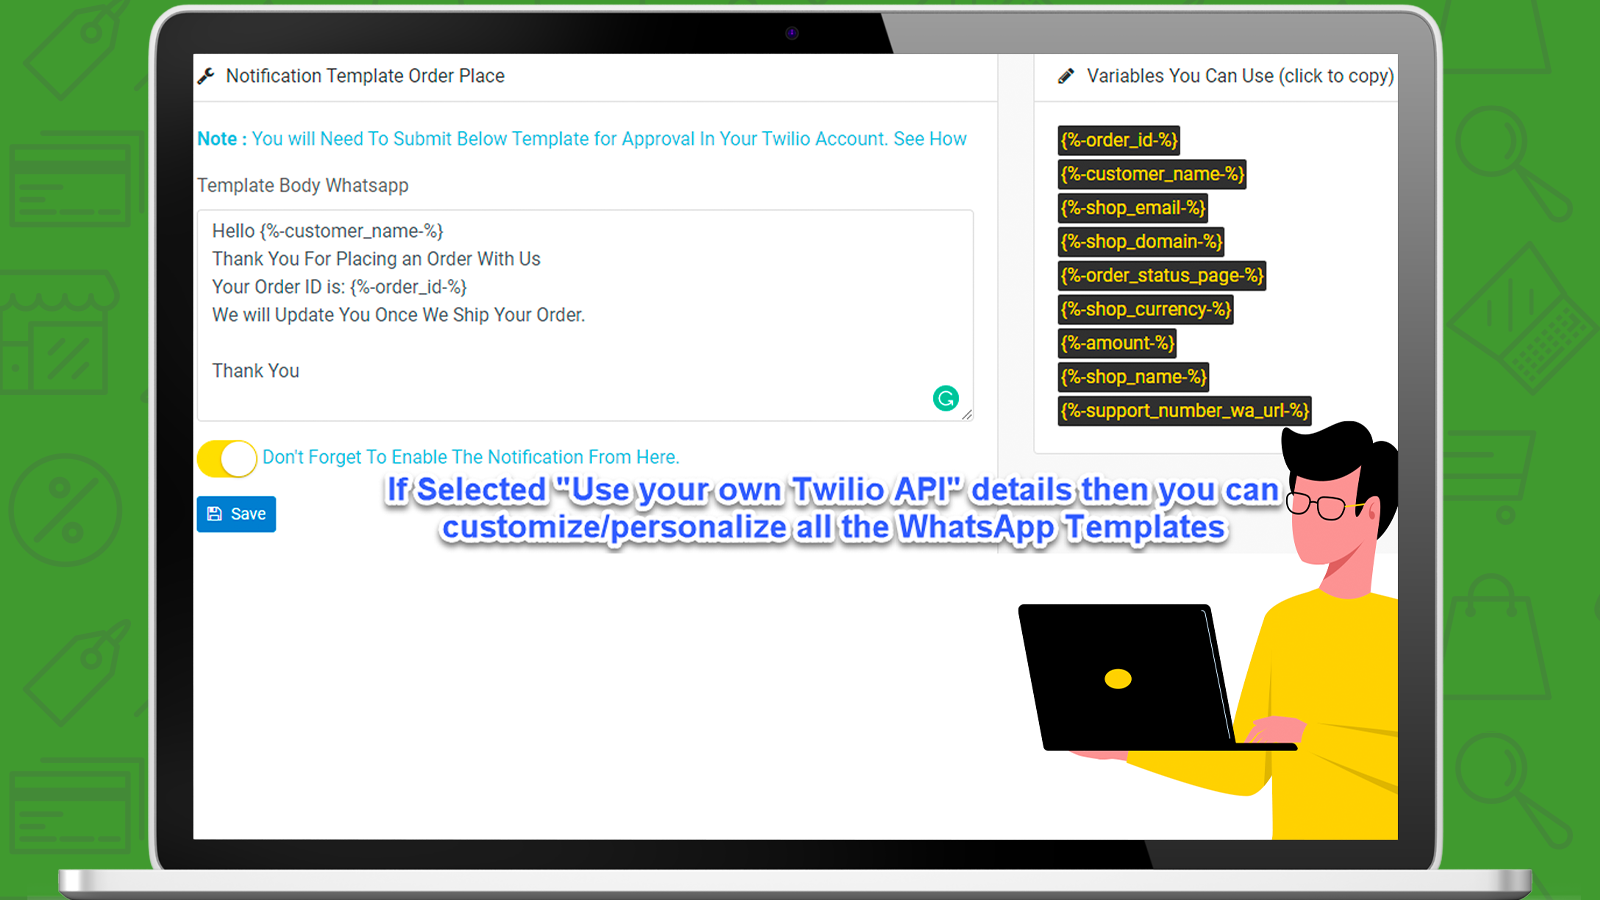 Customize / Personalize The WhatsApp Templates